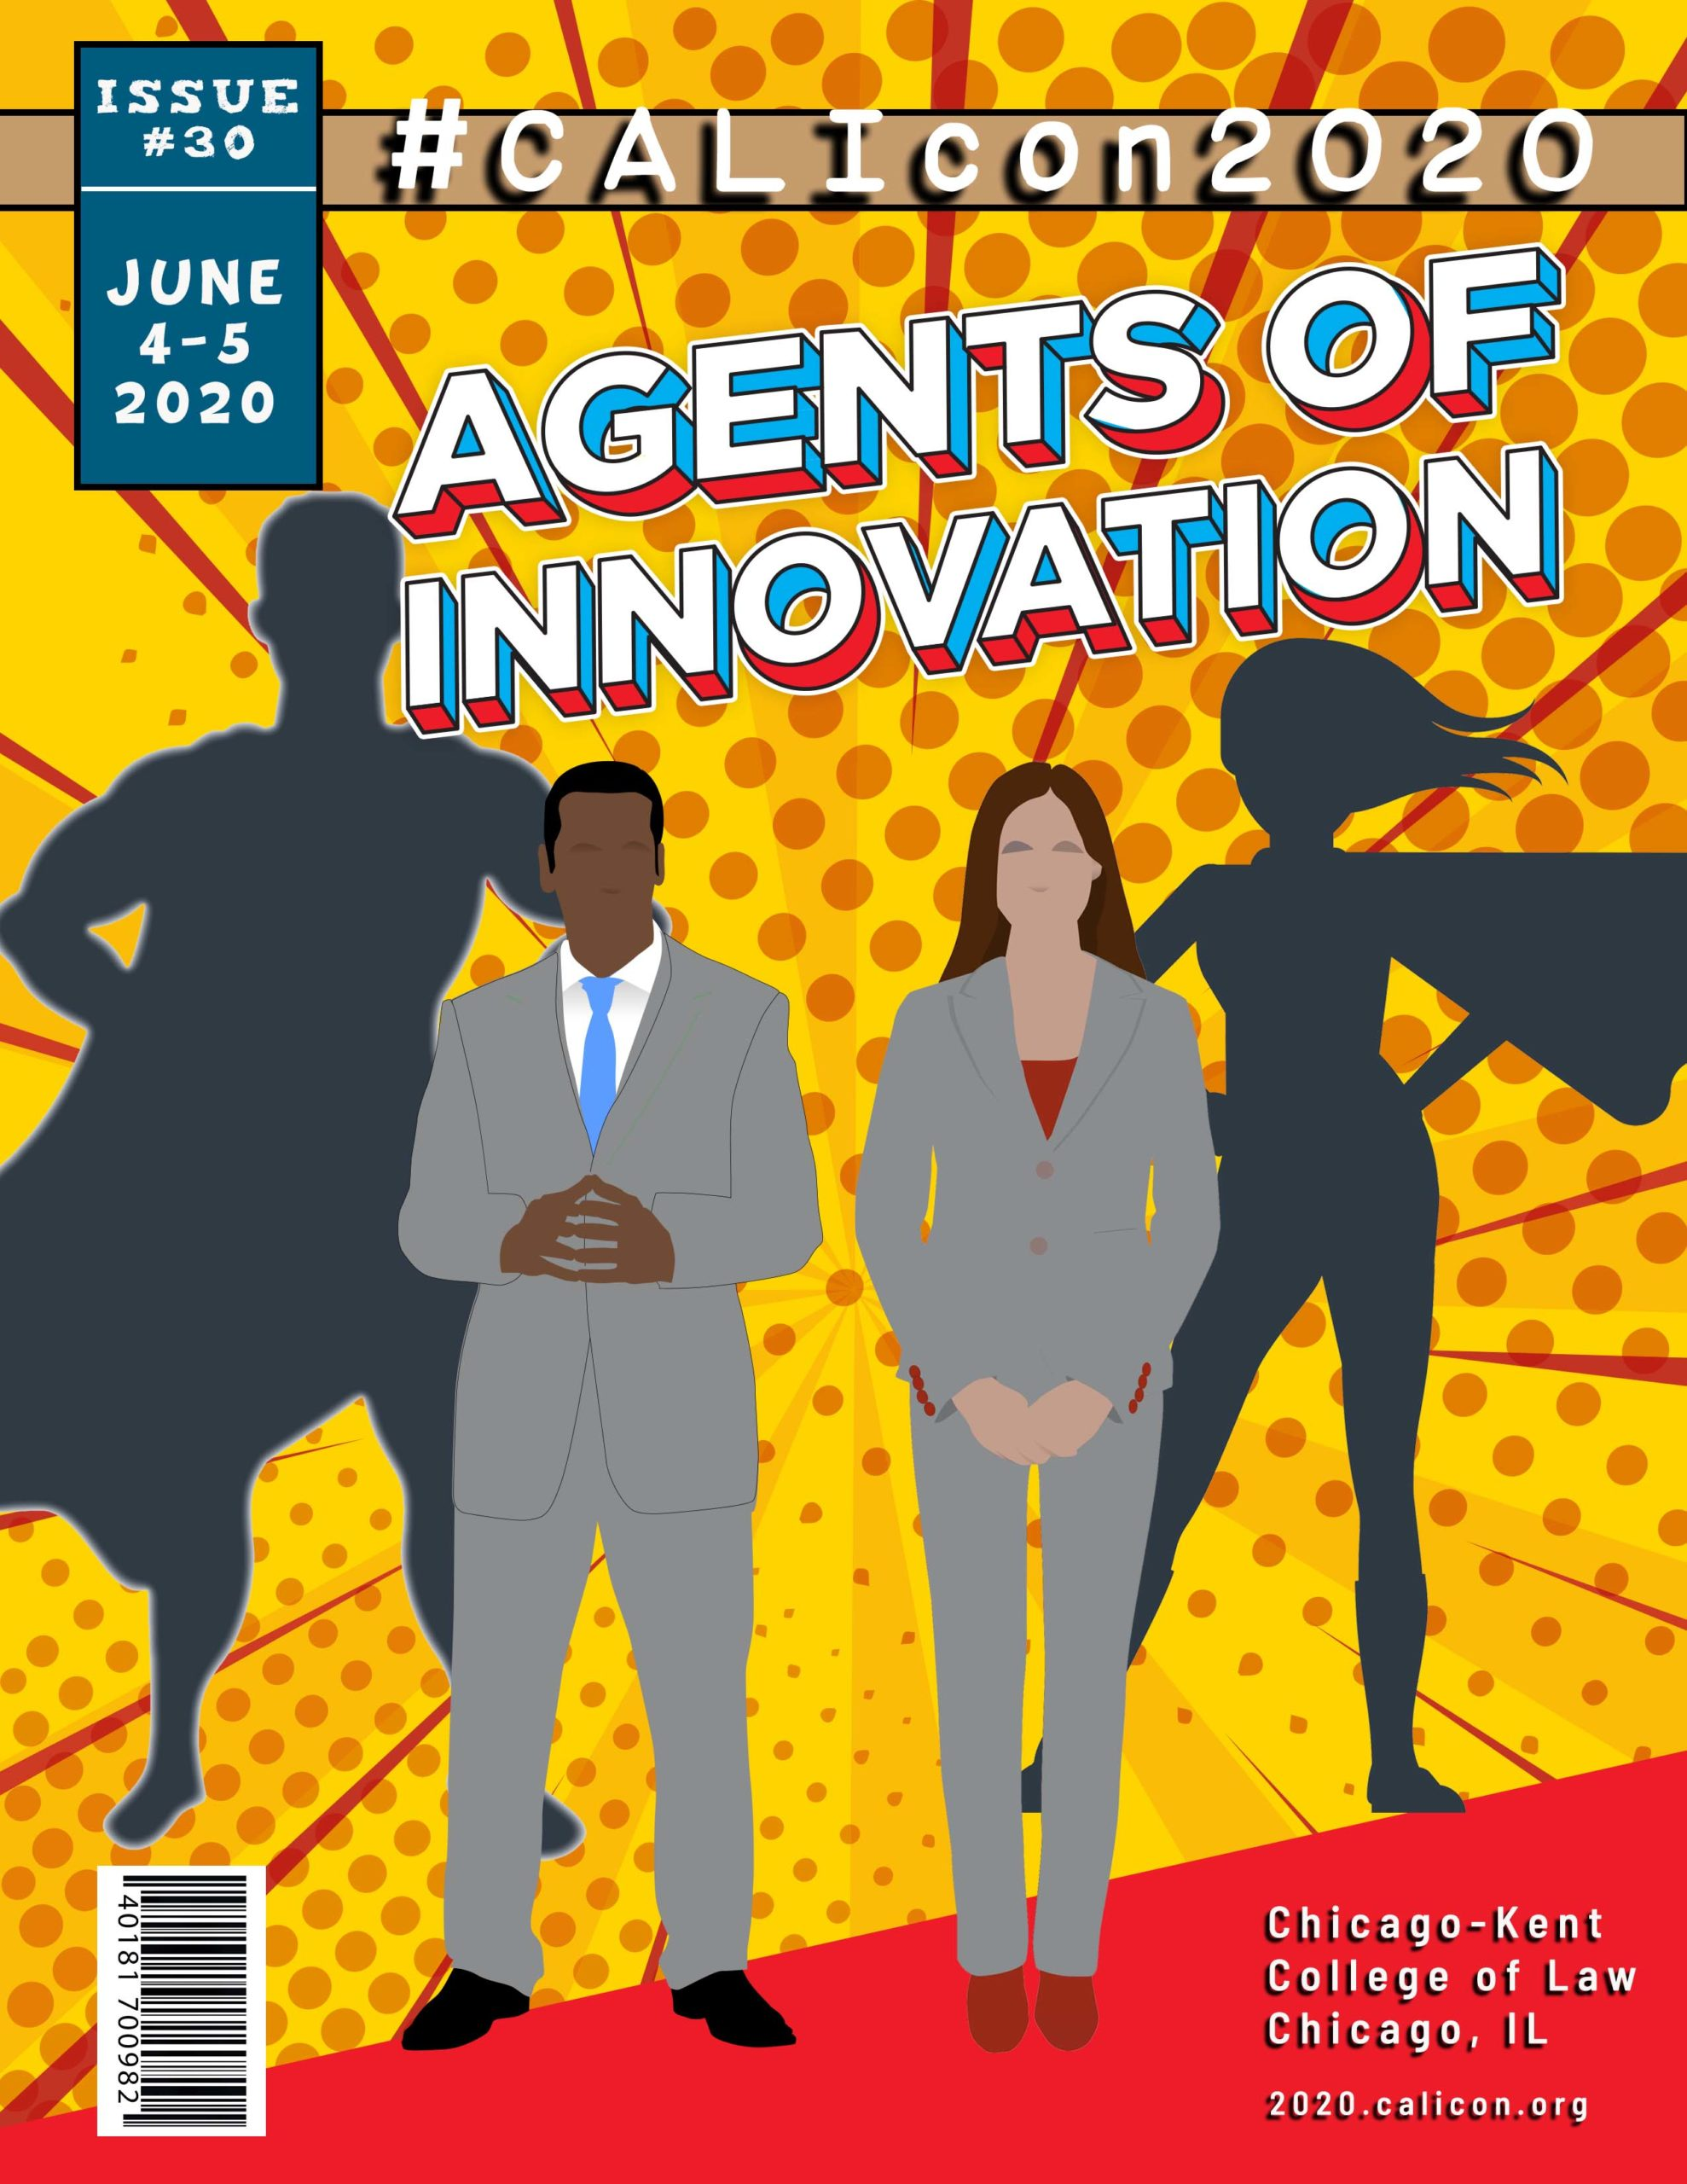 Agents of Innovation #CALIcon2020